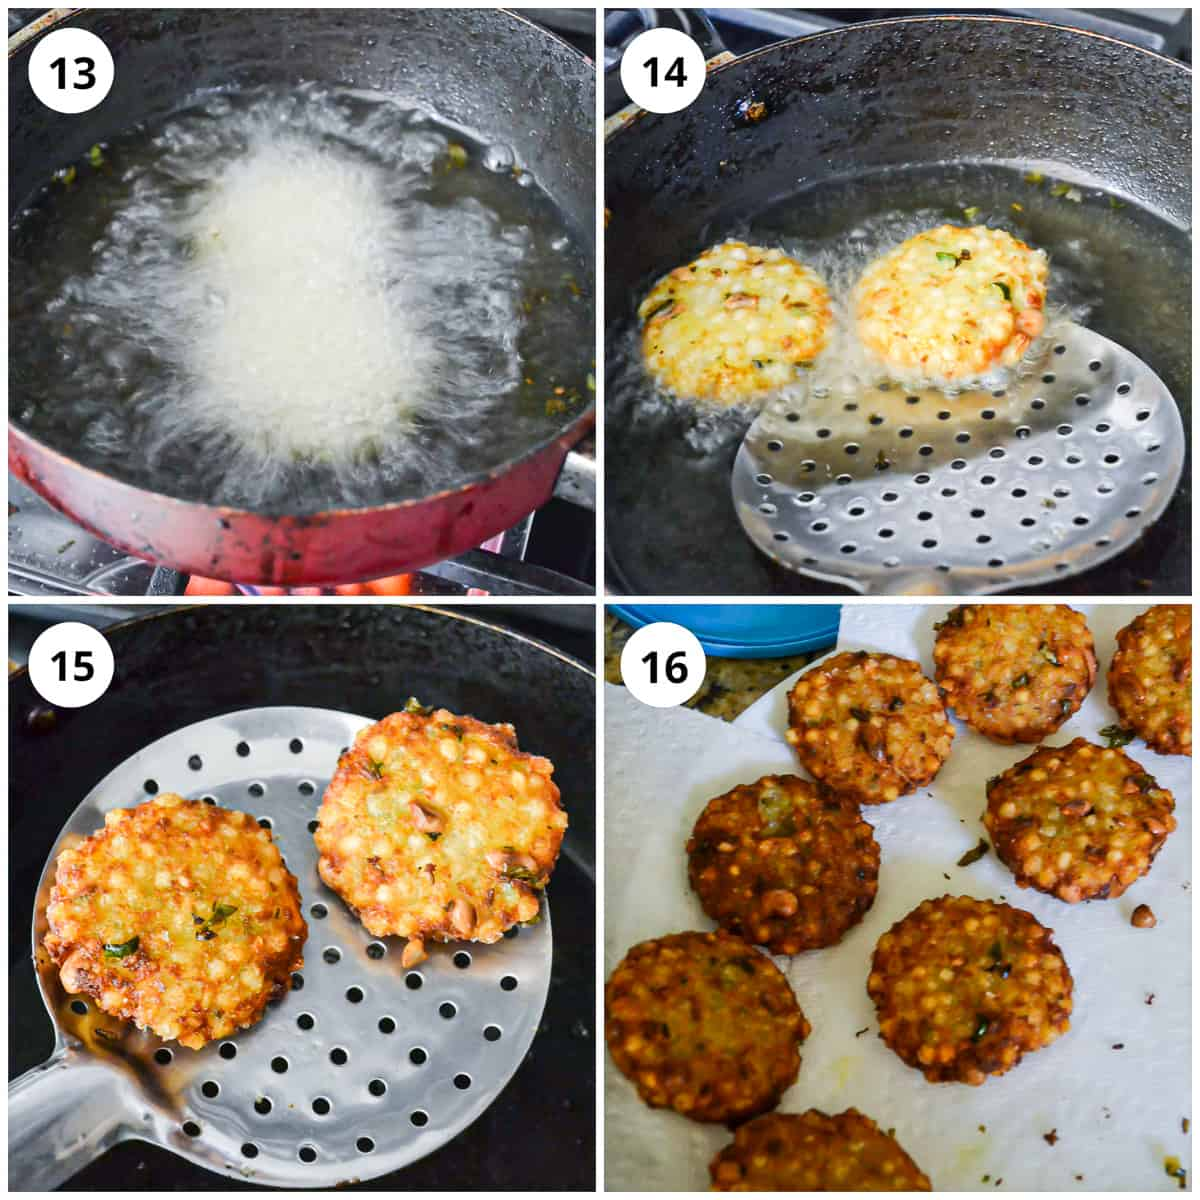 Frying the sabudana vada and draining them